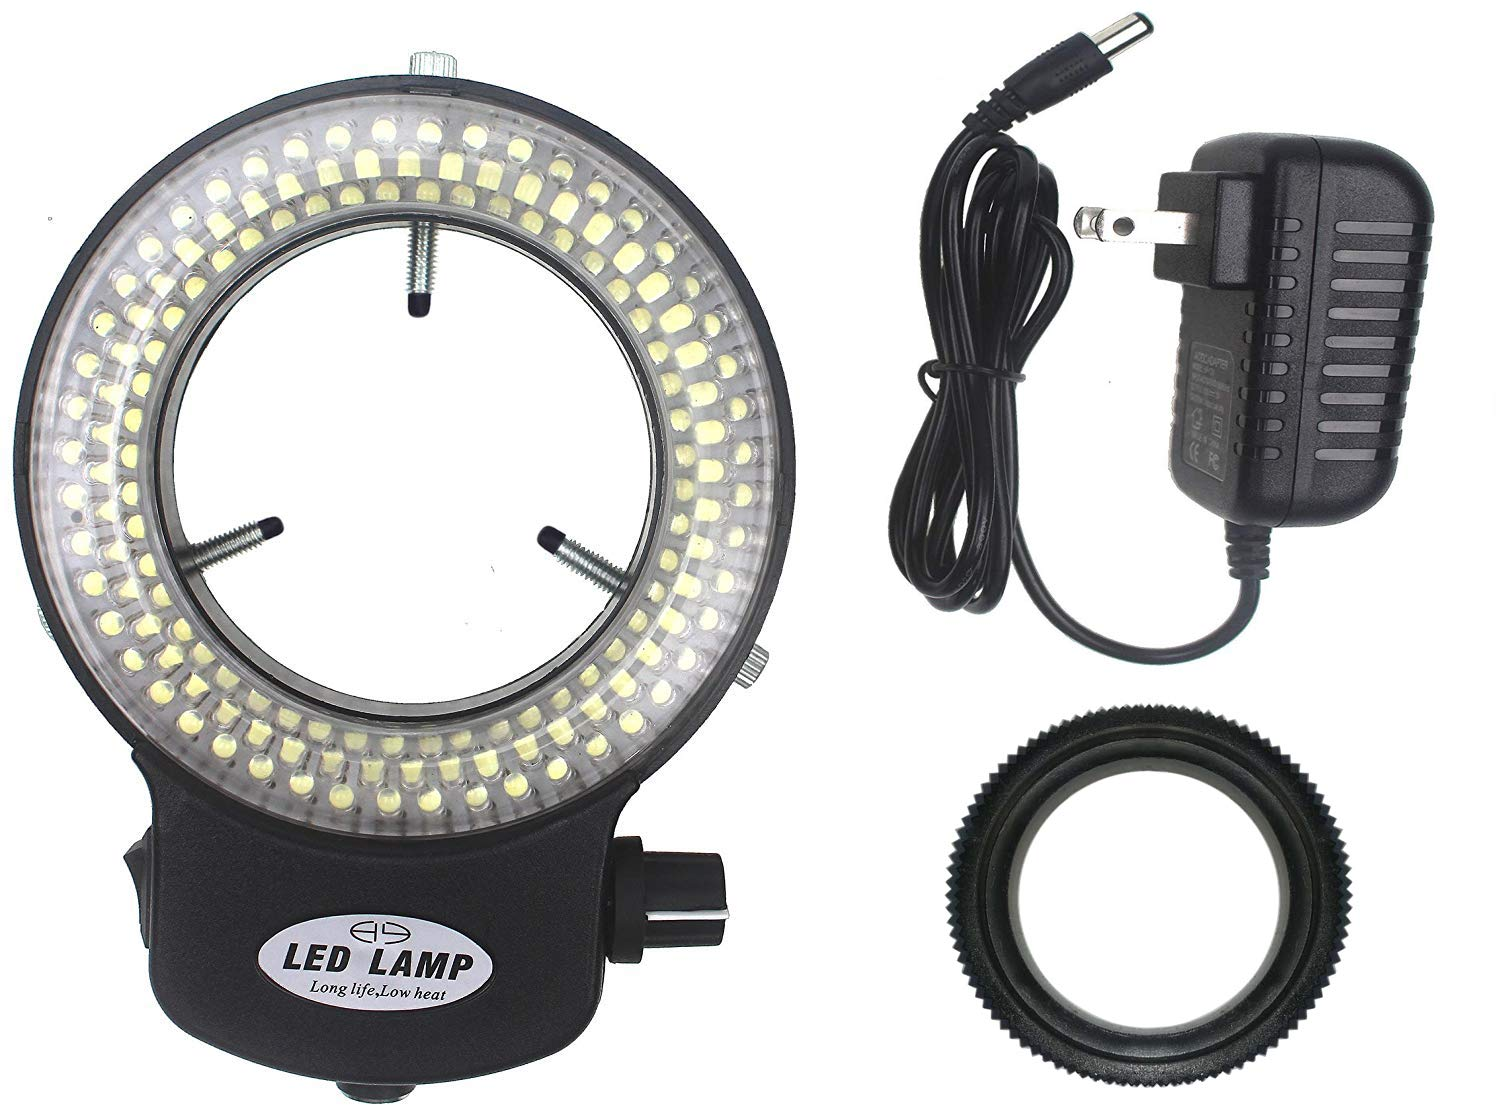 LED-144-ZK Black Adjustable 144 LED Ring Light Illuminator for Stereo Microscope (Black) by Sweet Melodi